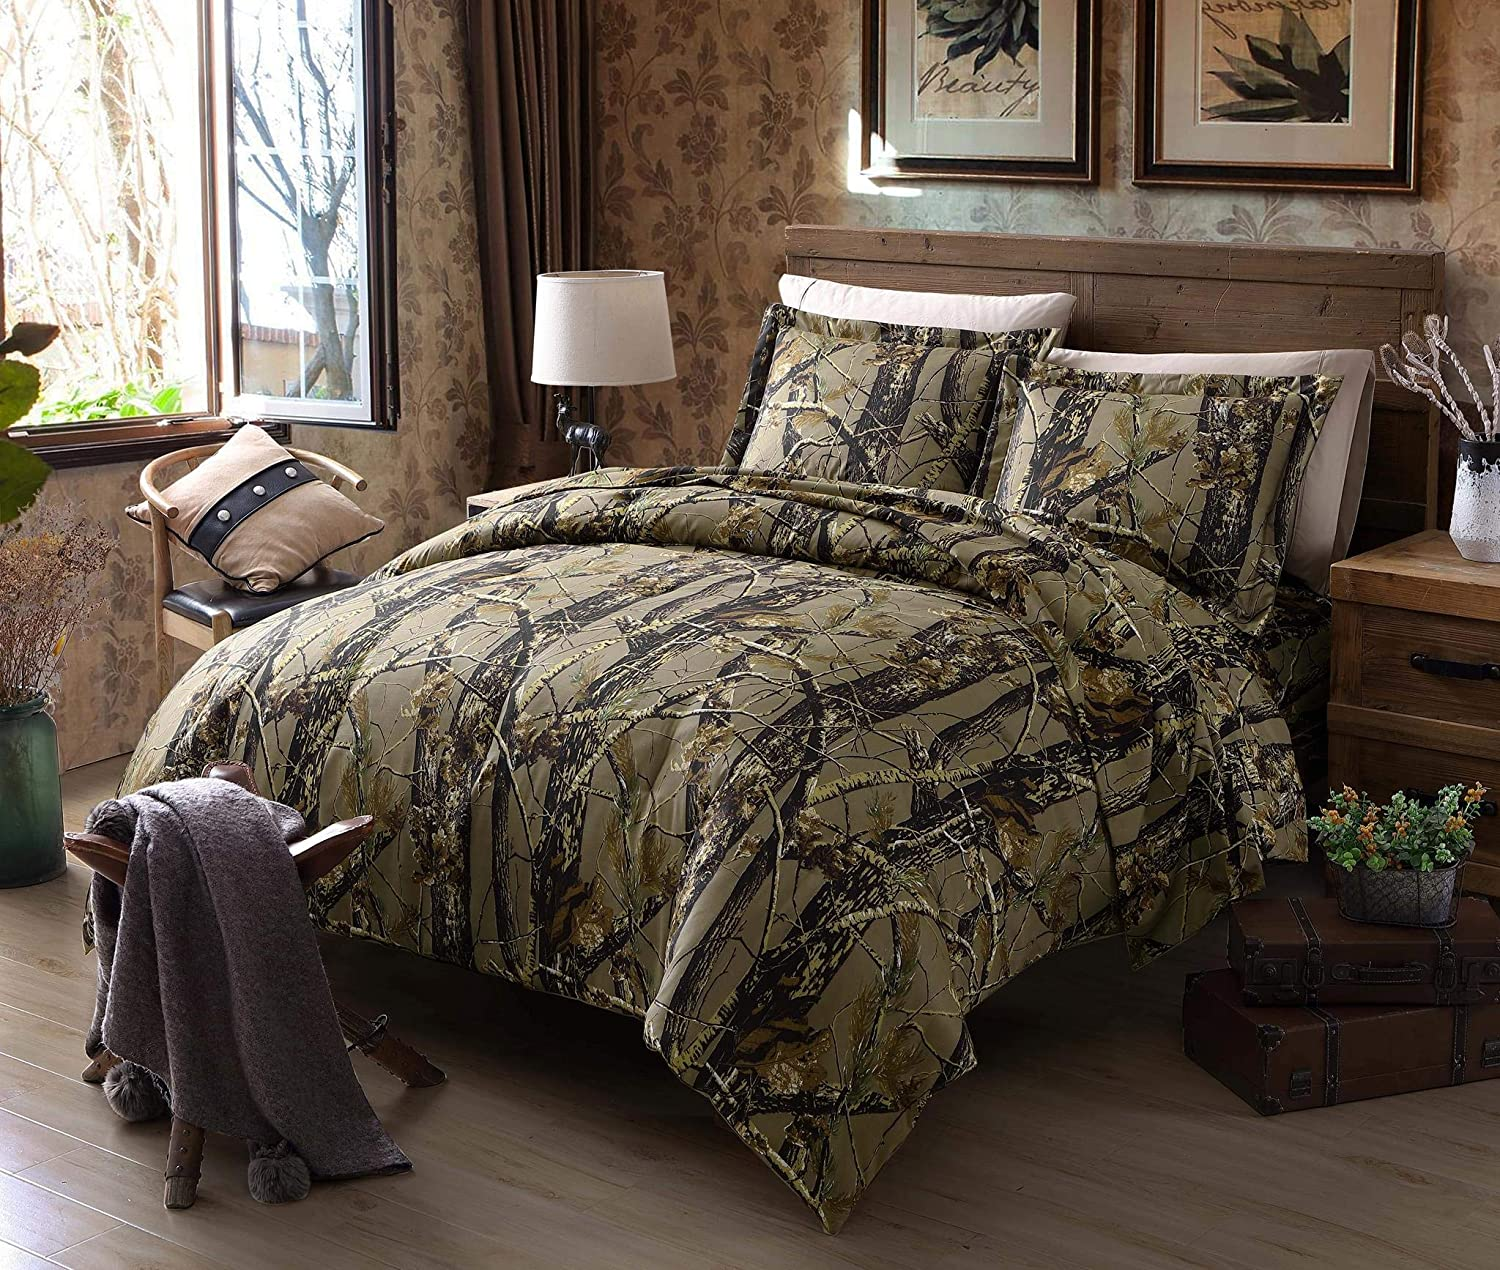 Chezmoi Collection Salem 3-Piece Forest Woods Duvet Cover Set - Nature Camo Tree Leaves Printed Soft Microfiber Comforter Cover with Button Closure - Natural, Queen